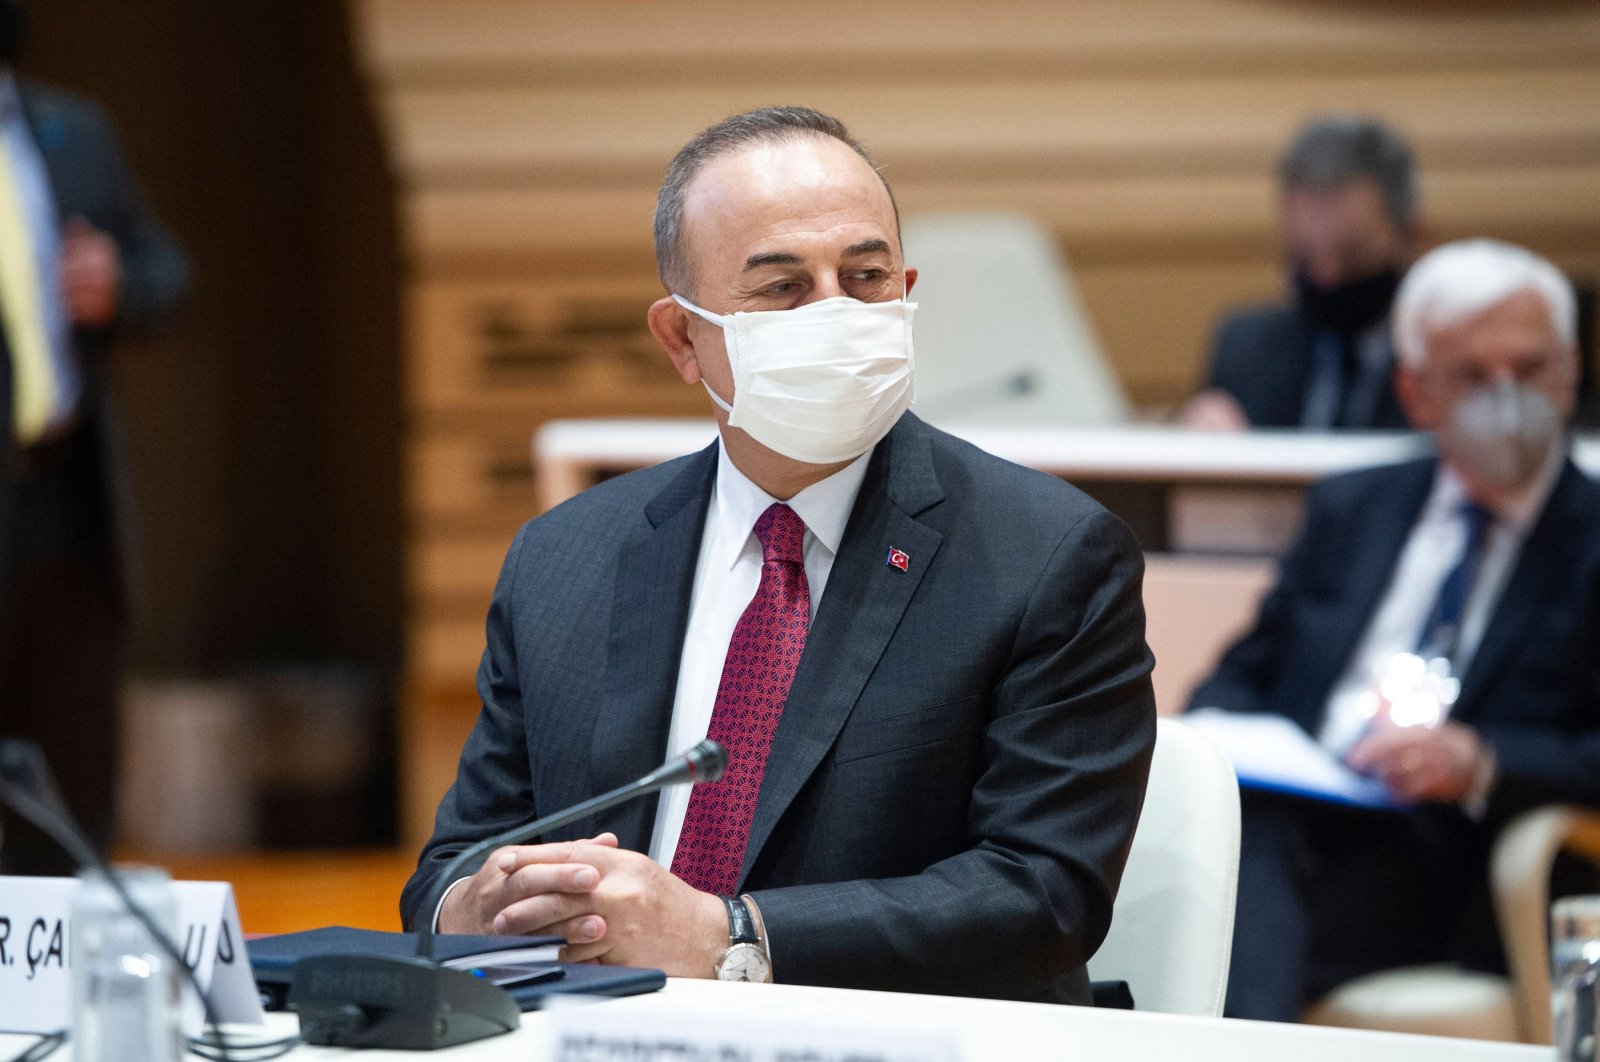 Turkey's Foreign Minister Mevlüt Çavuşoğlu is pictured at the opening of a 5 1 Meeting on Cyprus at the United Nations Office in Geneva, Switzerland, April 28, 2021. (AFP Photo)